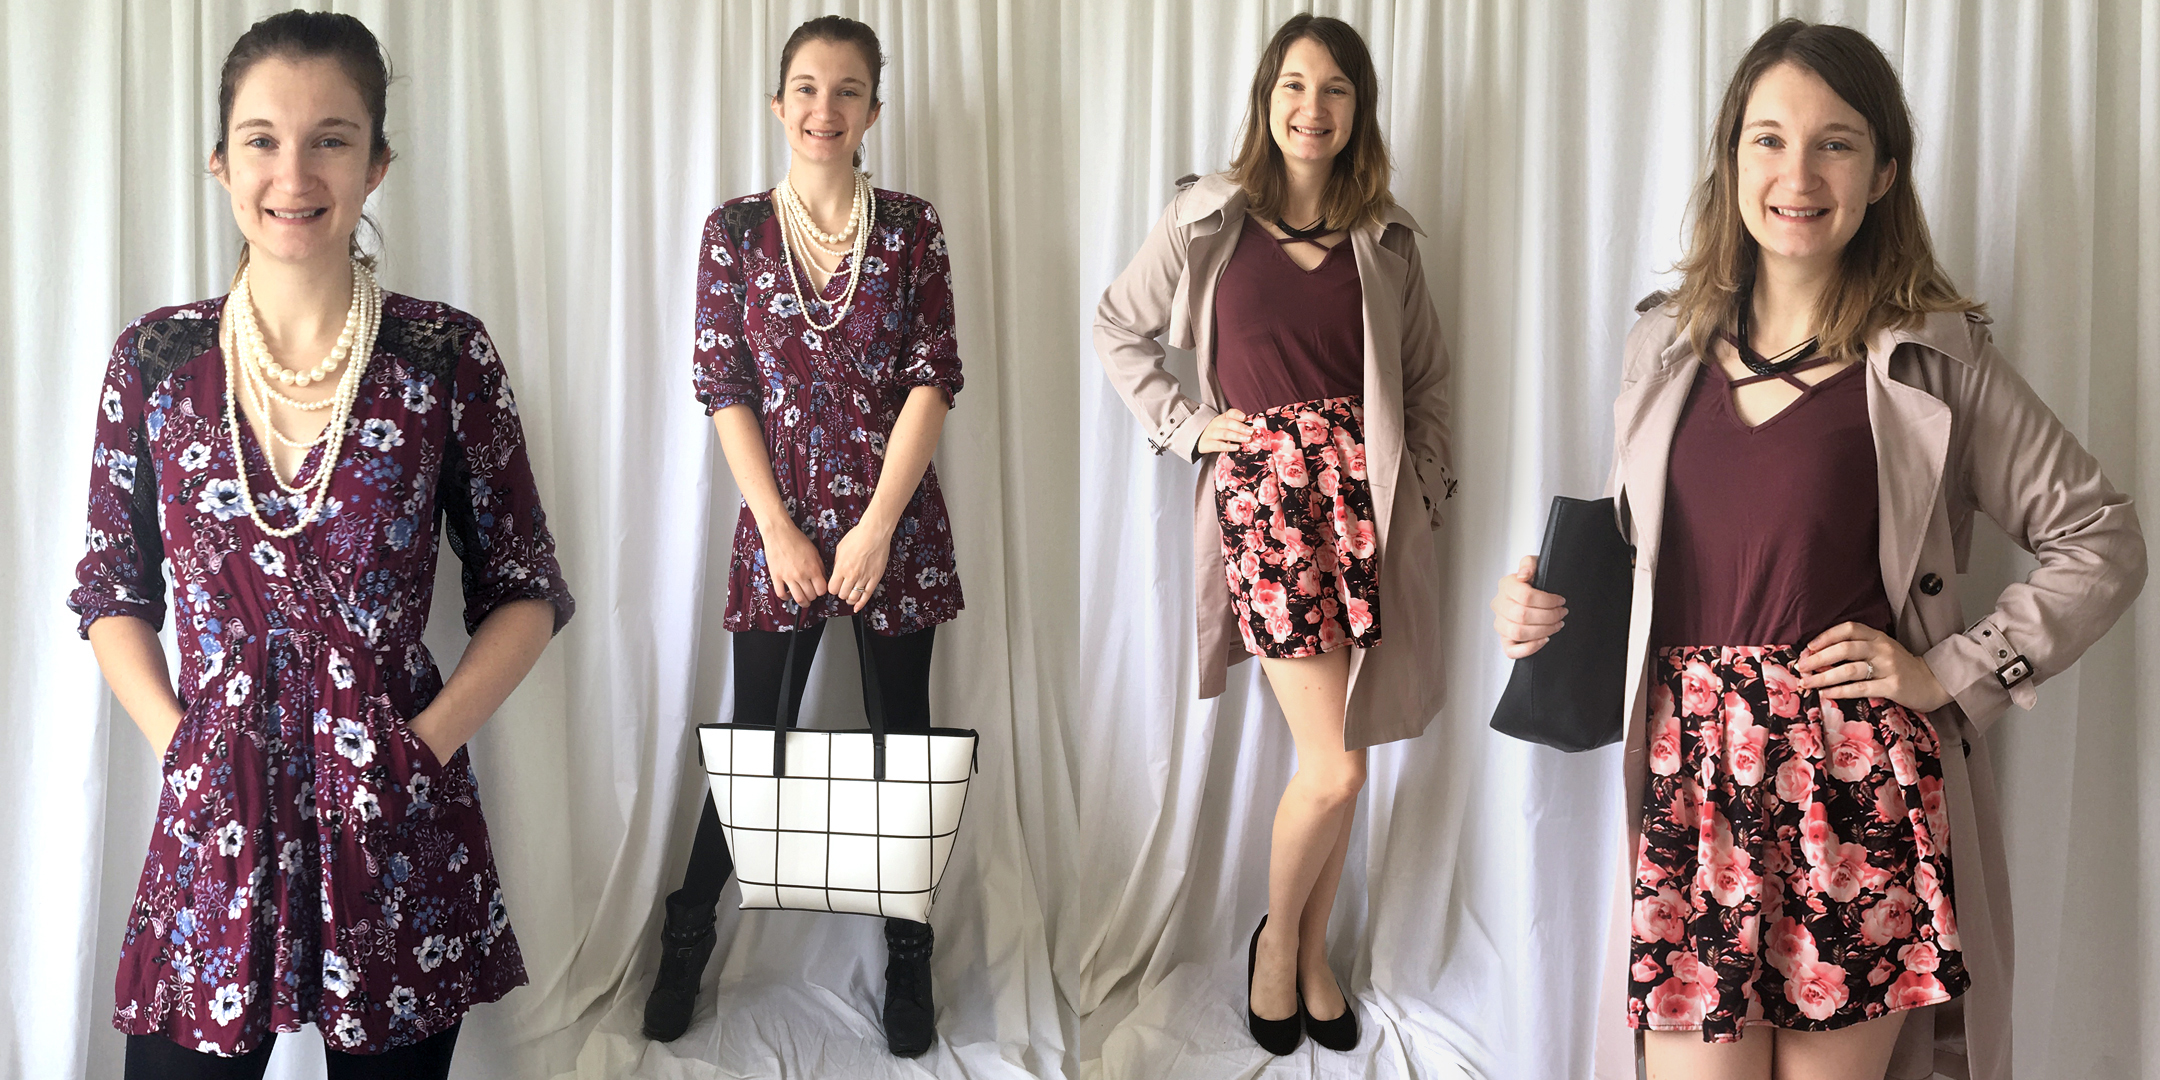 Instagram Round Up #20 Outfits Week 2